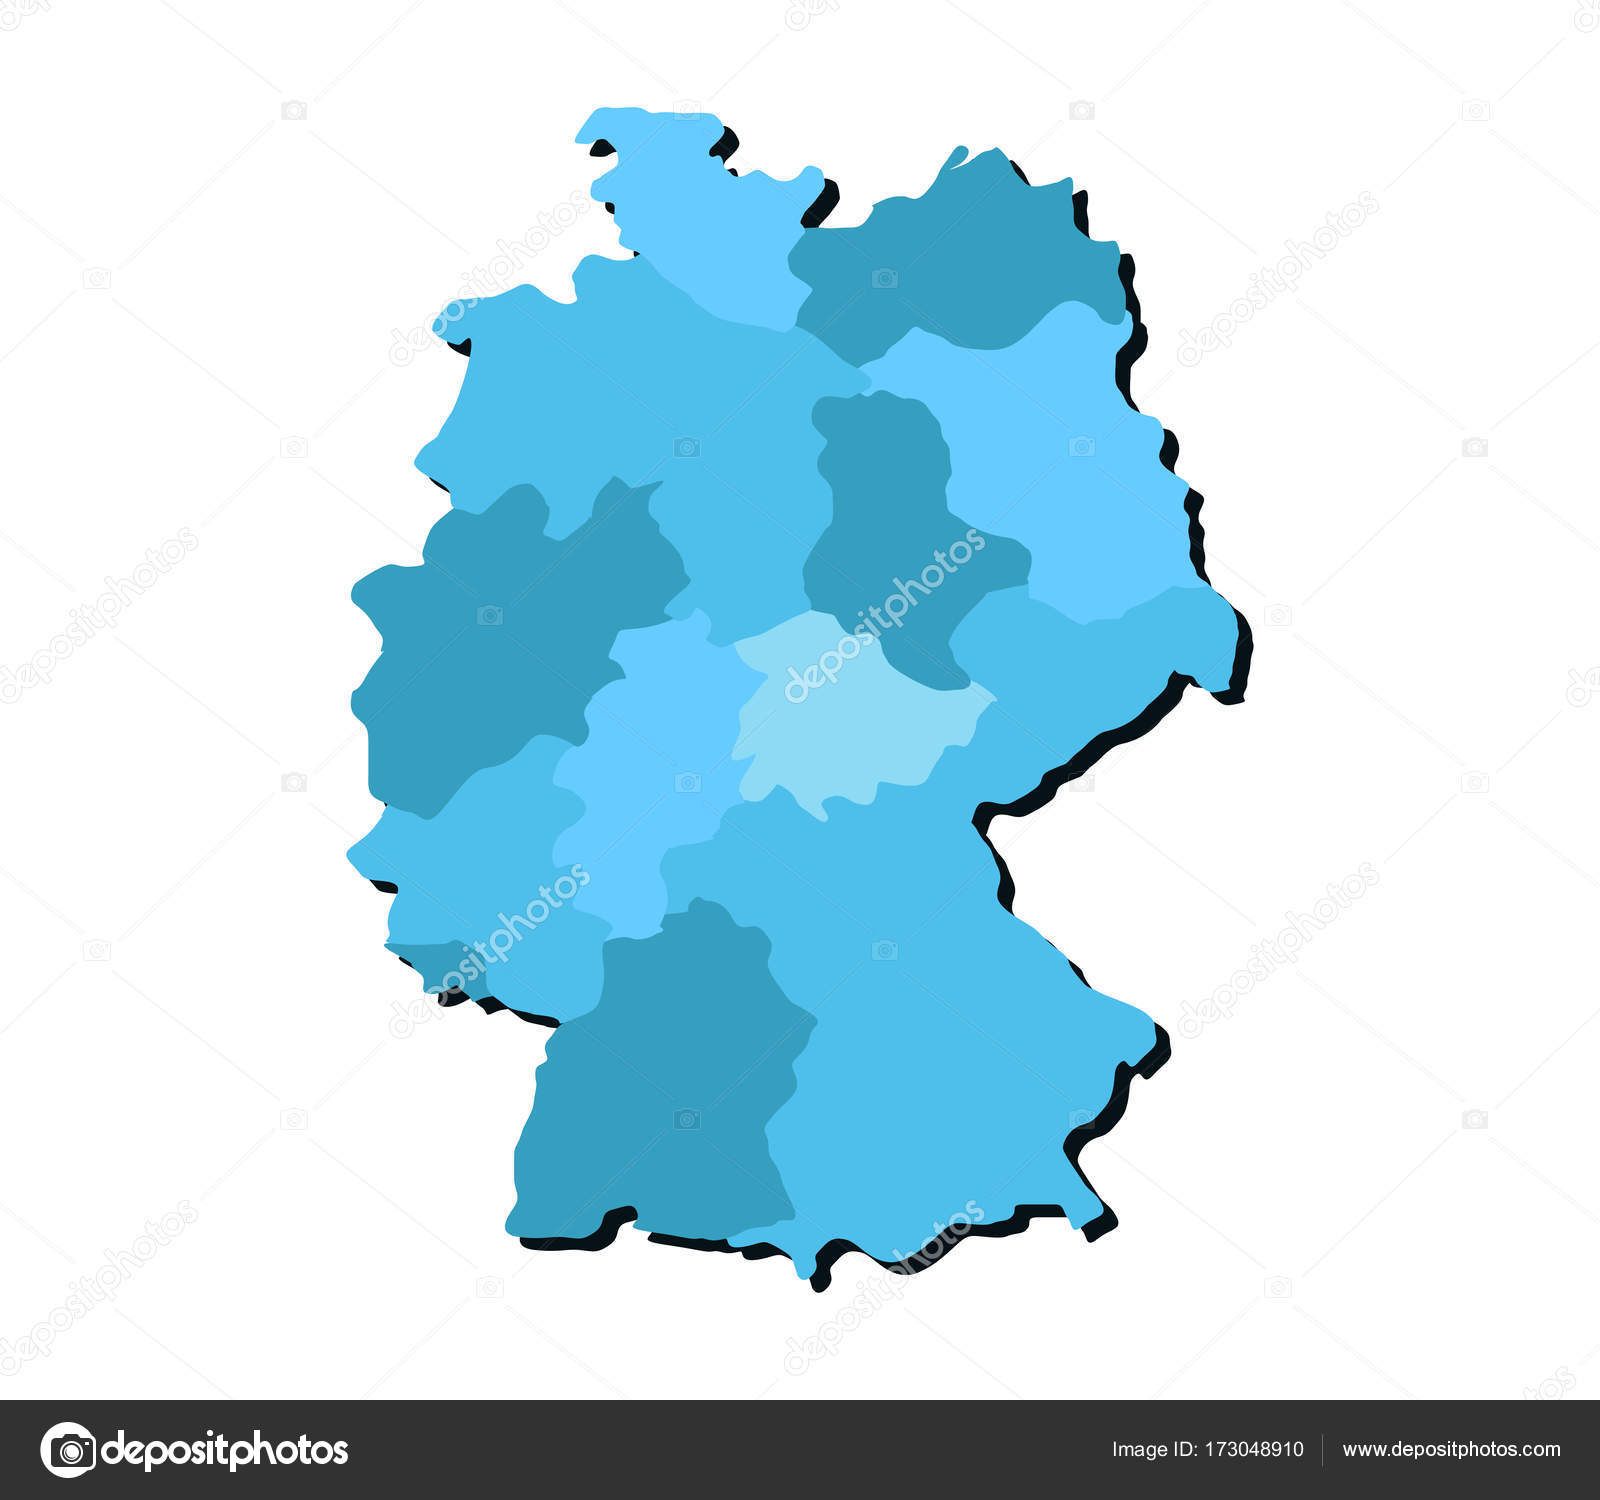 Map Of Germany With Regions.Map Germany Regions White Background Stock Vector C Marcotrapani